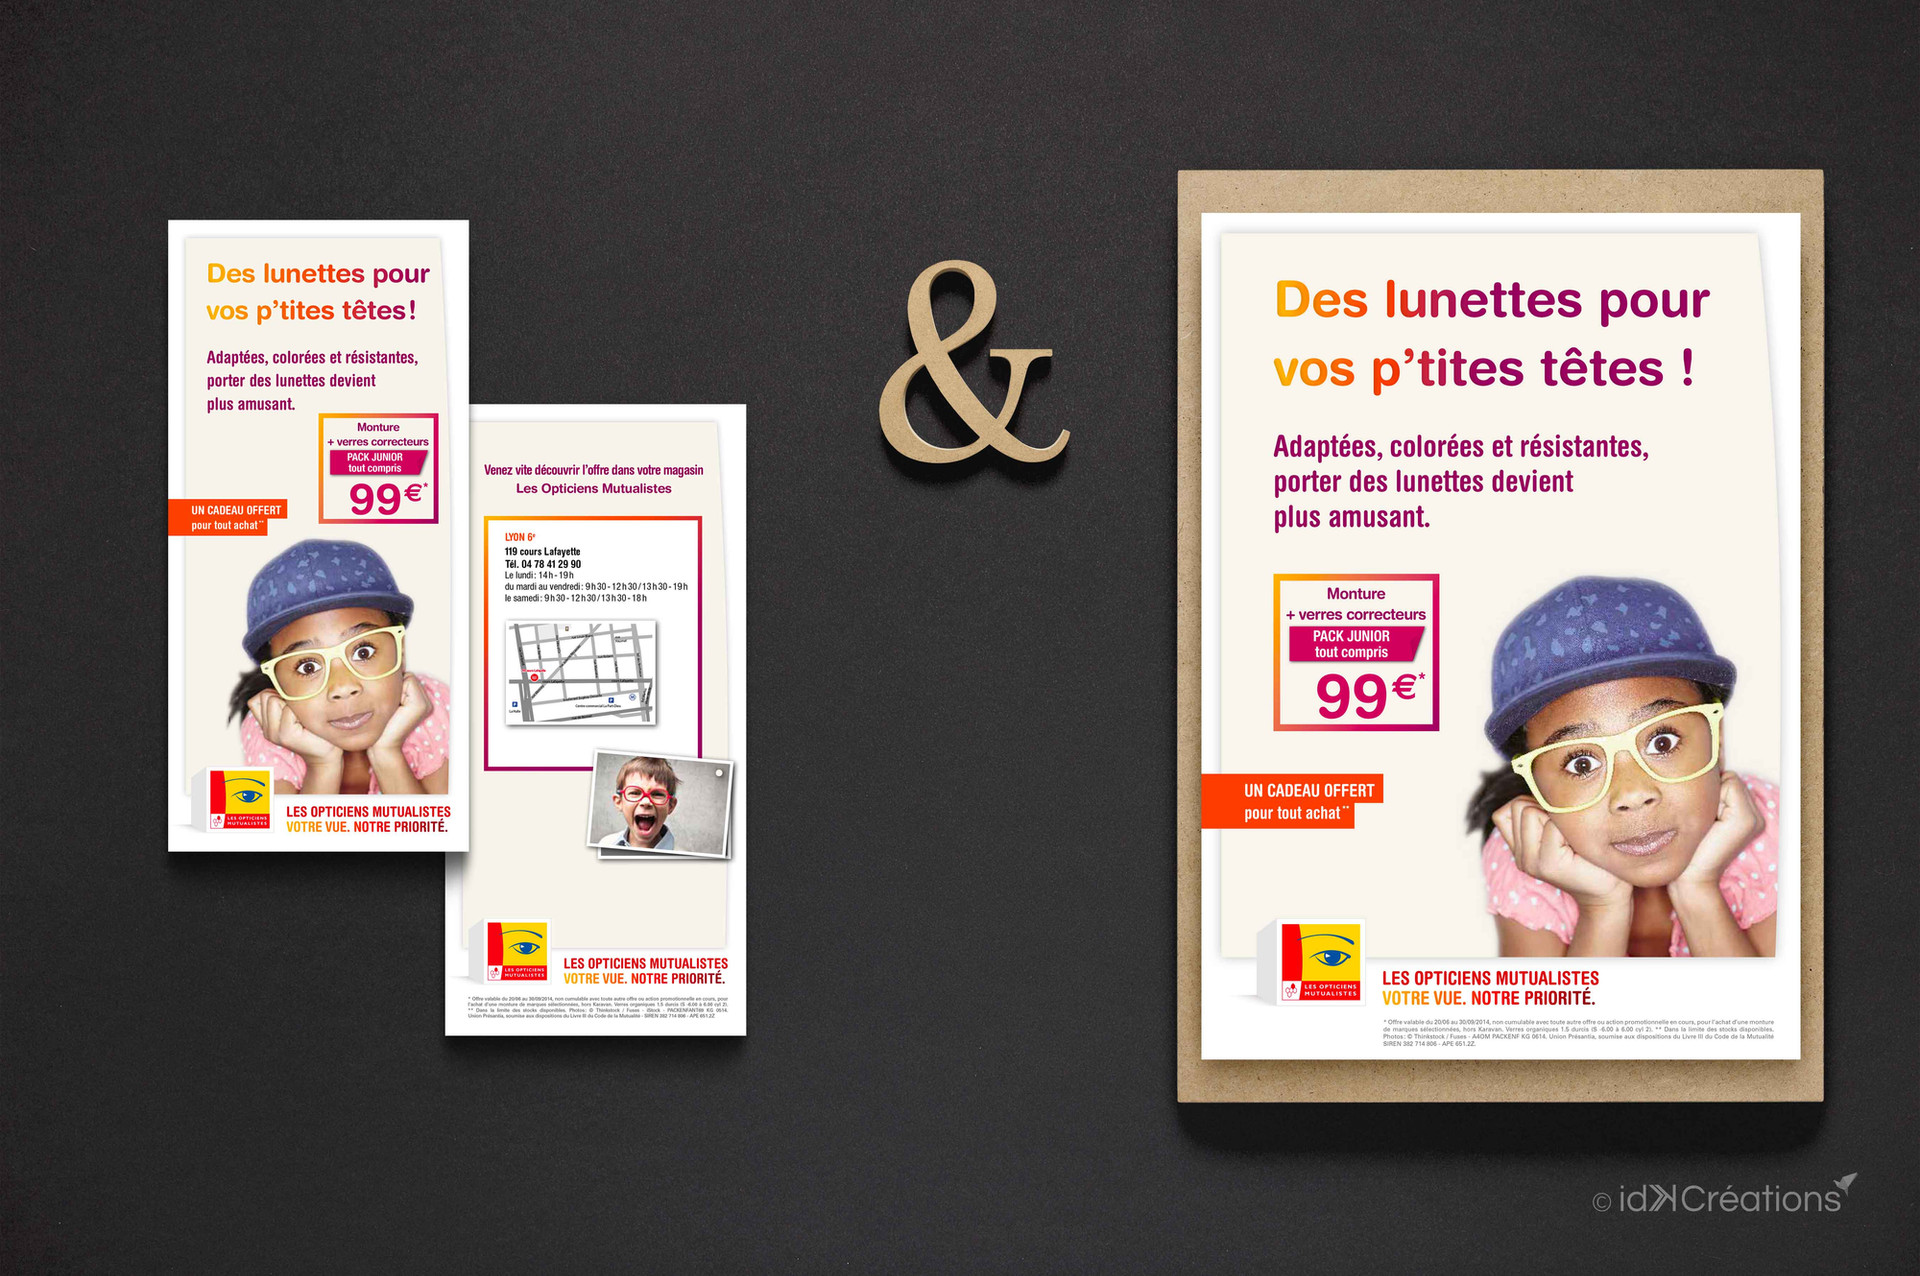 Campagne marketing Les Opticiens Mutualistes